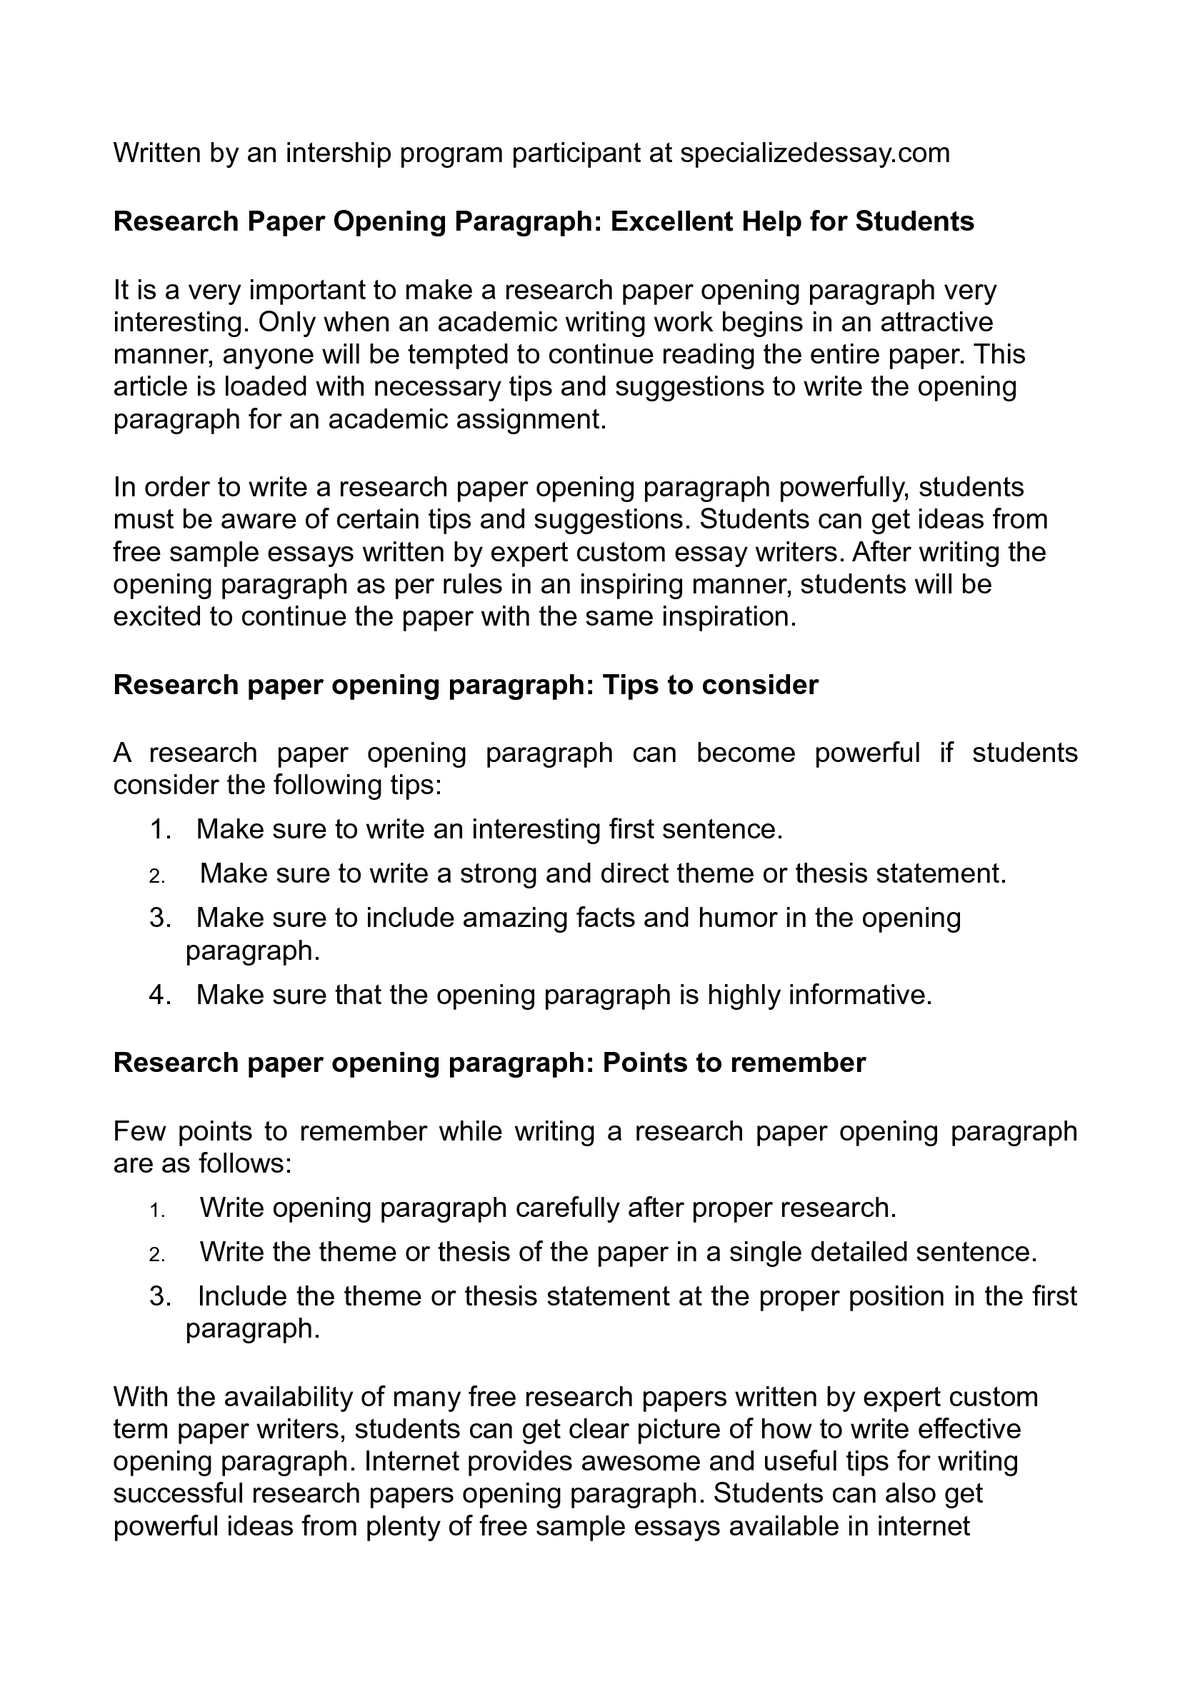 024 Get Help With Research Paper Stunning Writing A Full